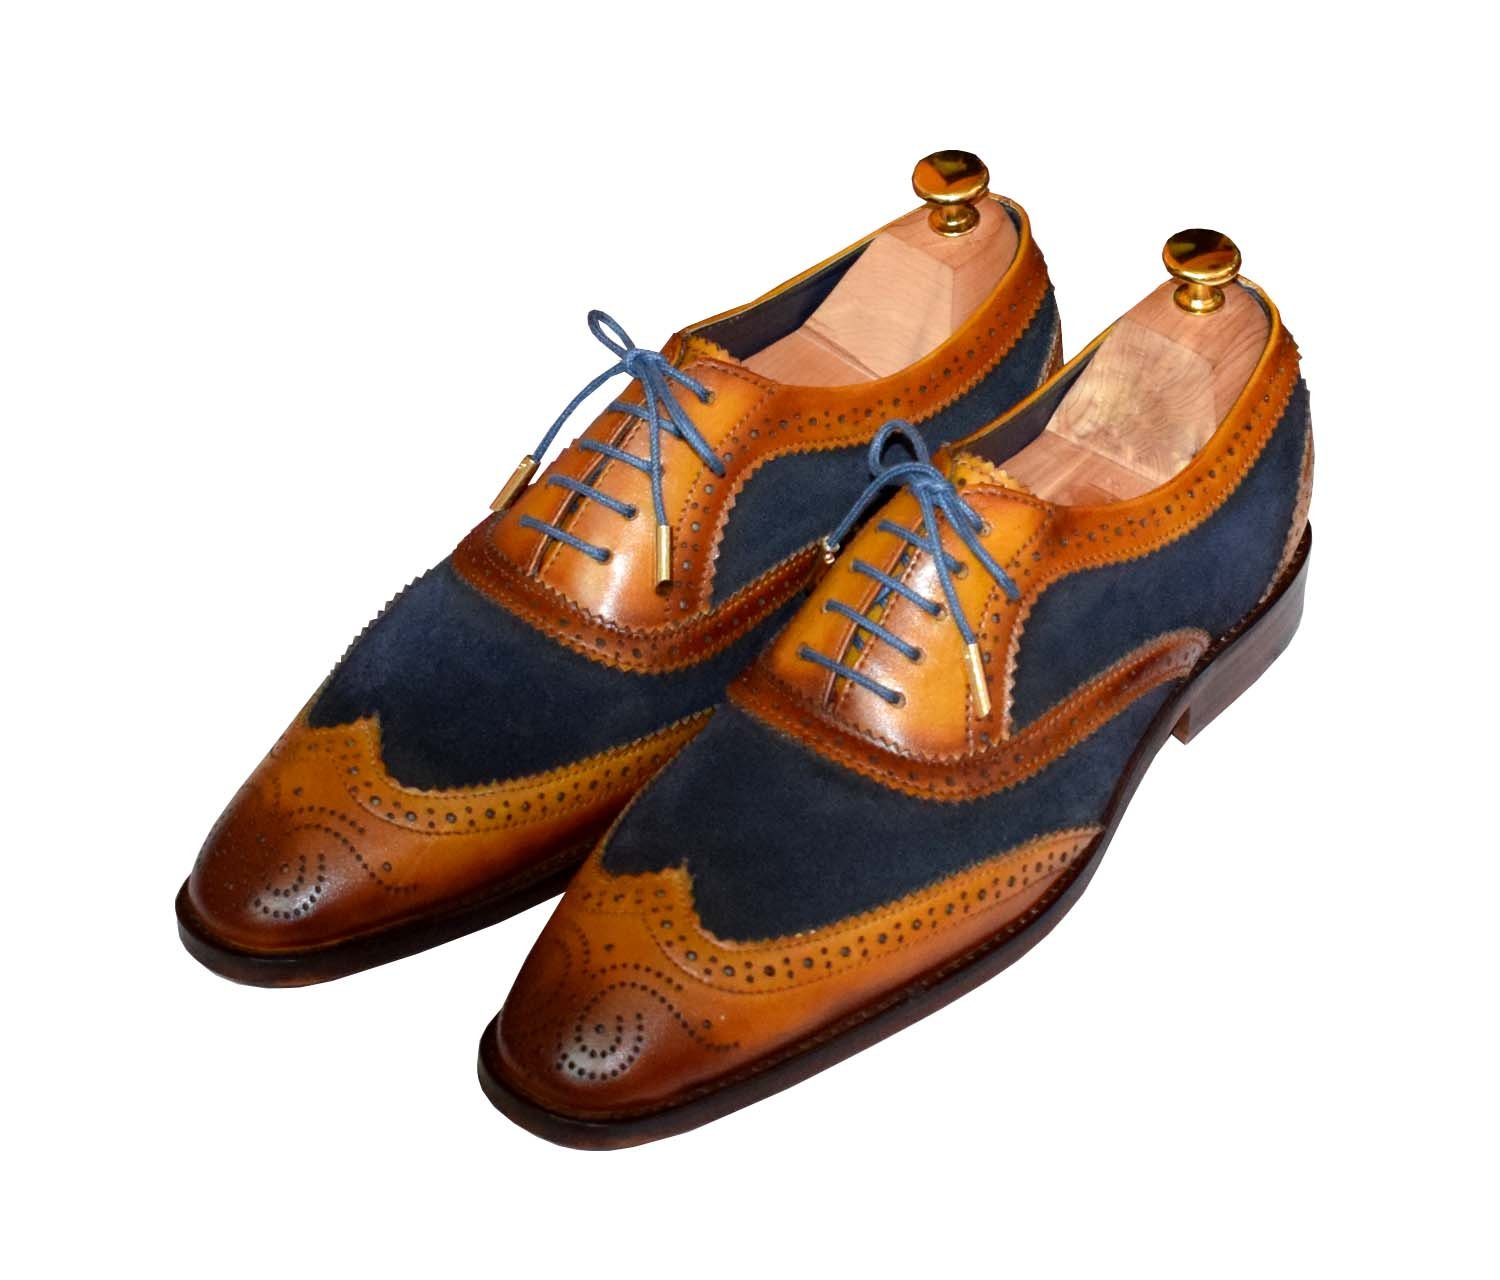 Lethato Wingtip Brogue Oxford - Navy Blue